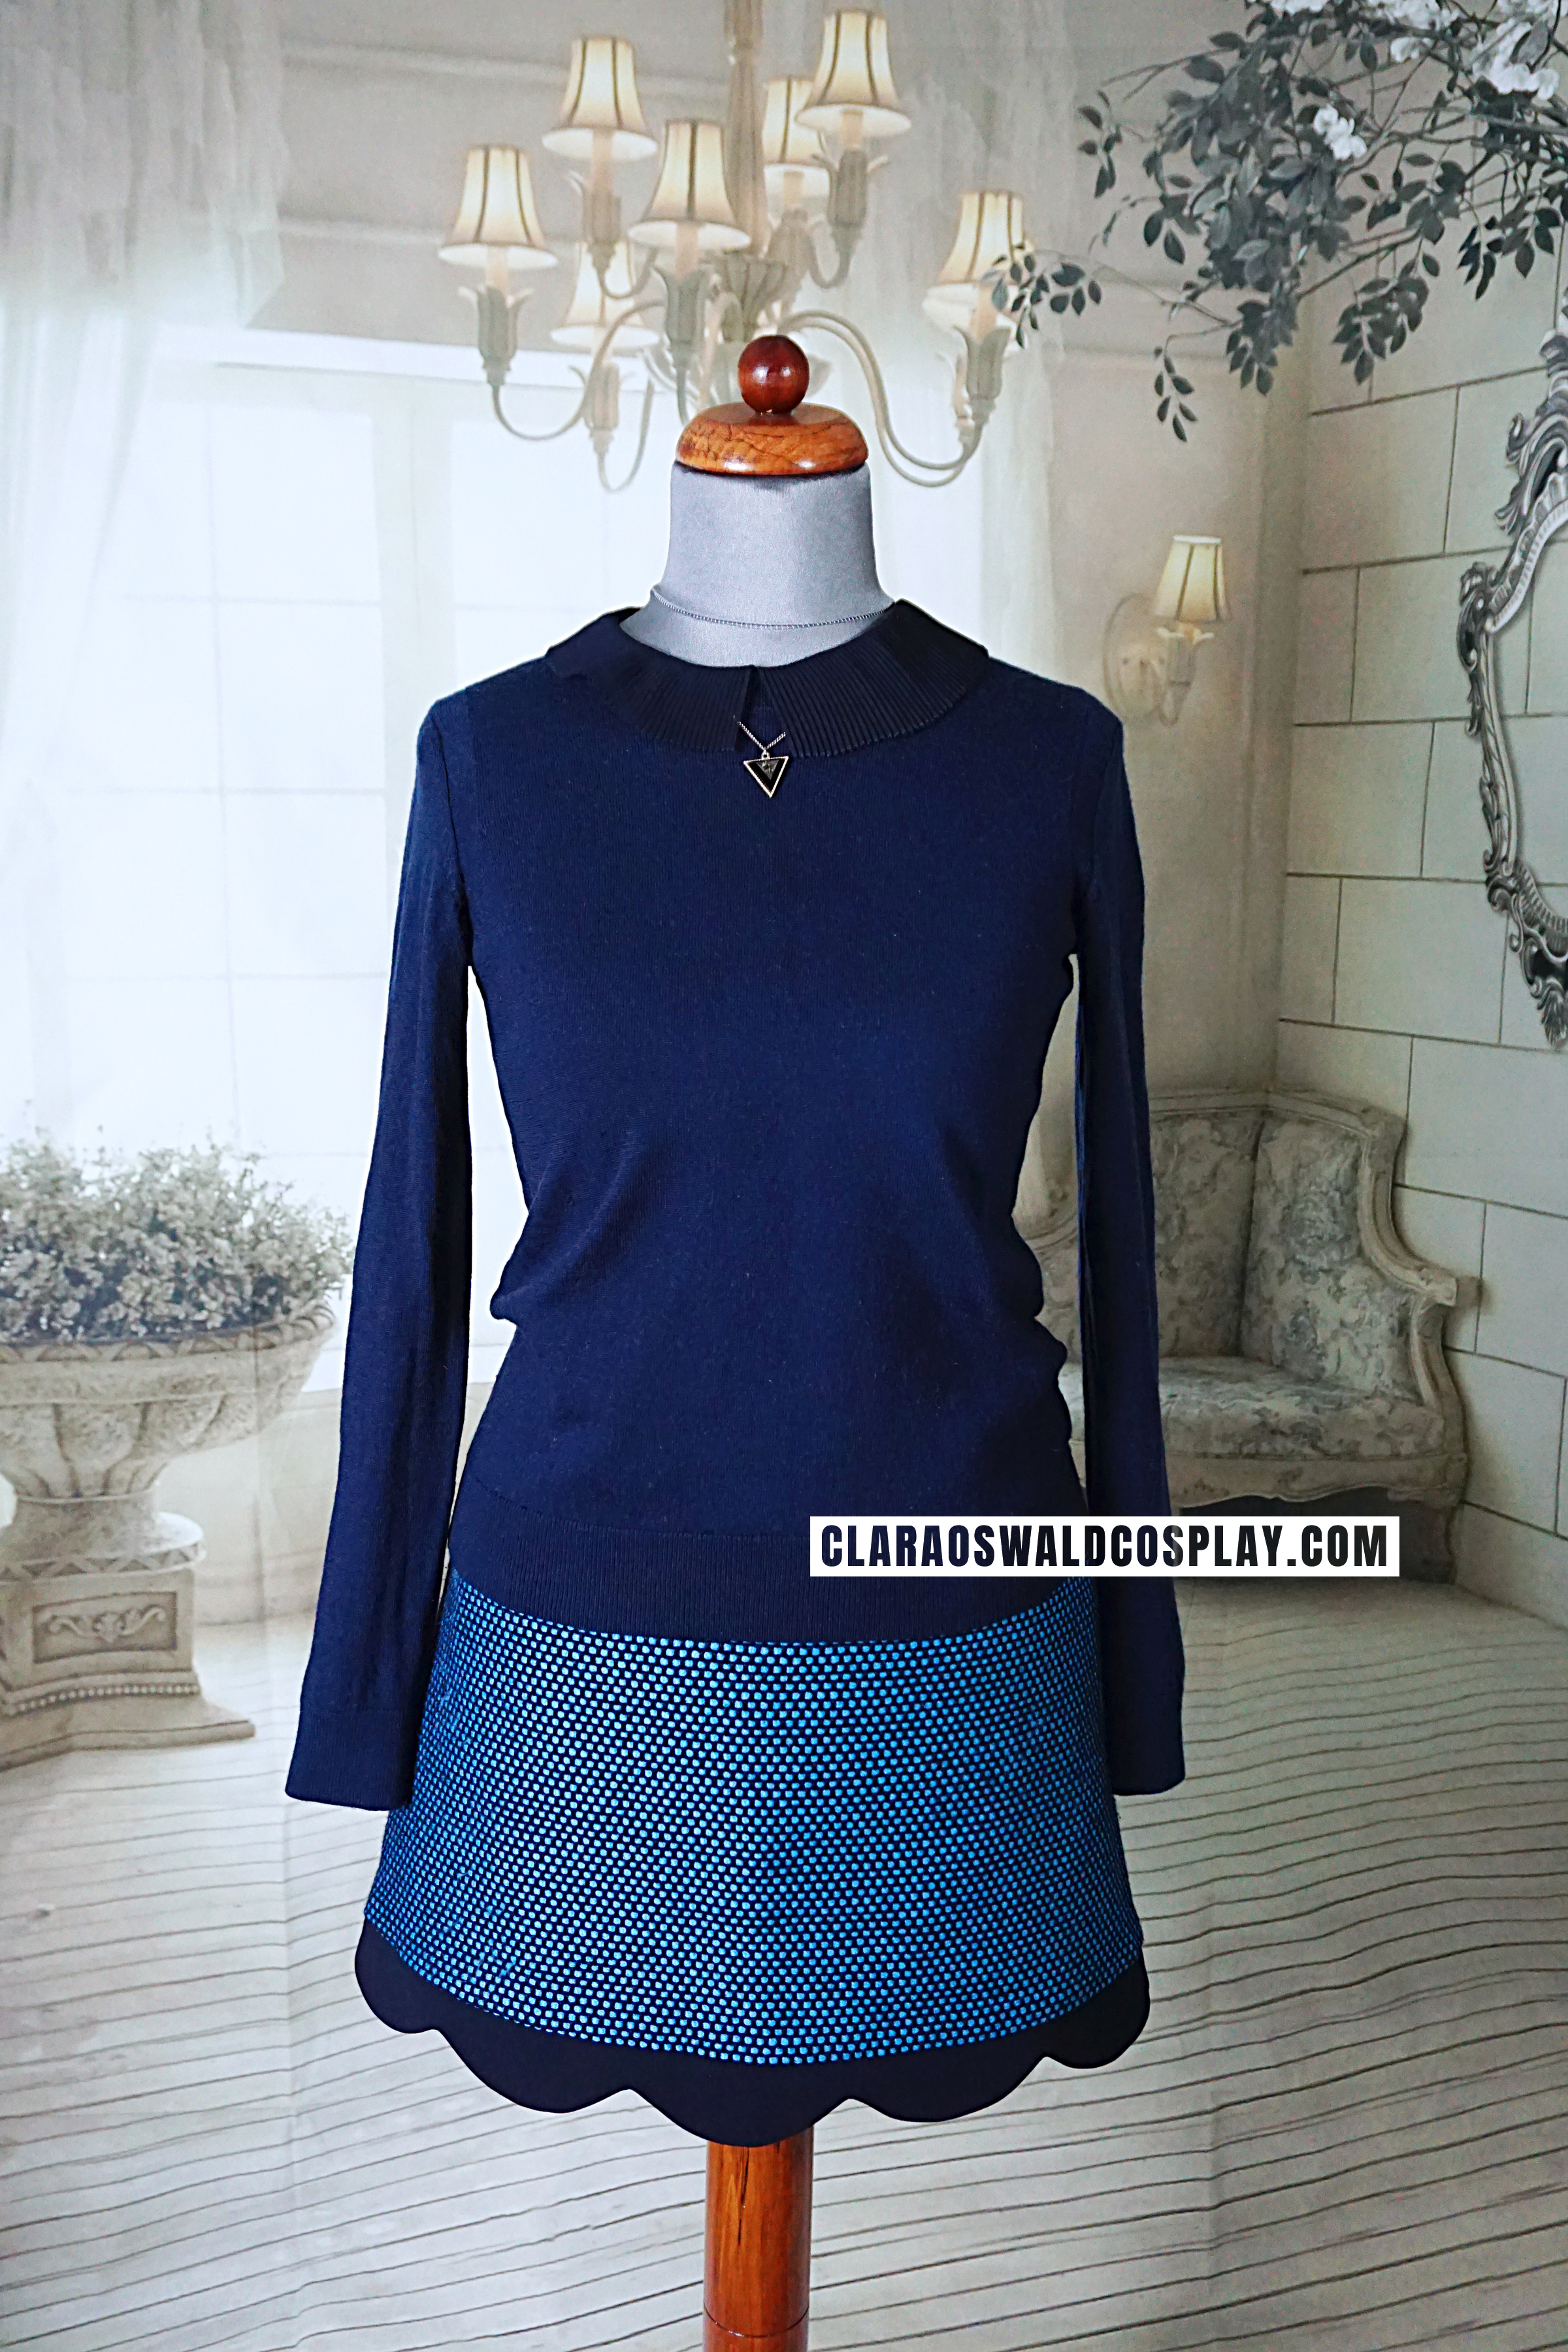 Clara Oswald's complete Sleep No More outfit featuring the Claudie Pierlot Soline Skirt, Claudie Pierlot Brooklyn Top and GAP Navy Jumper (Merino)